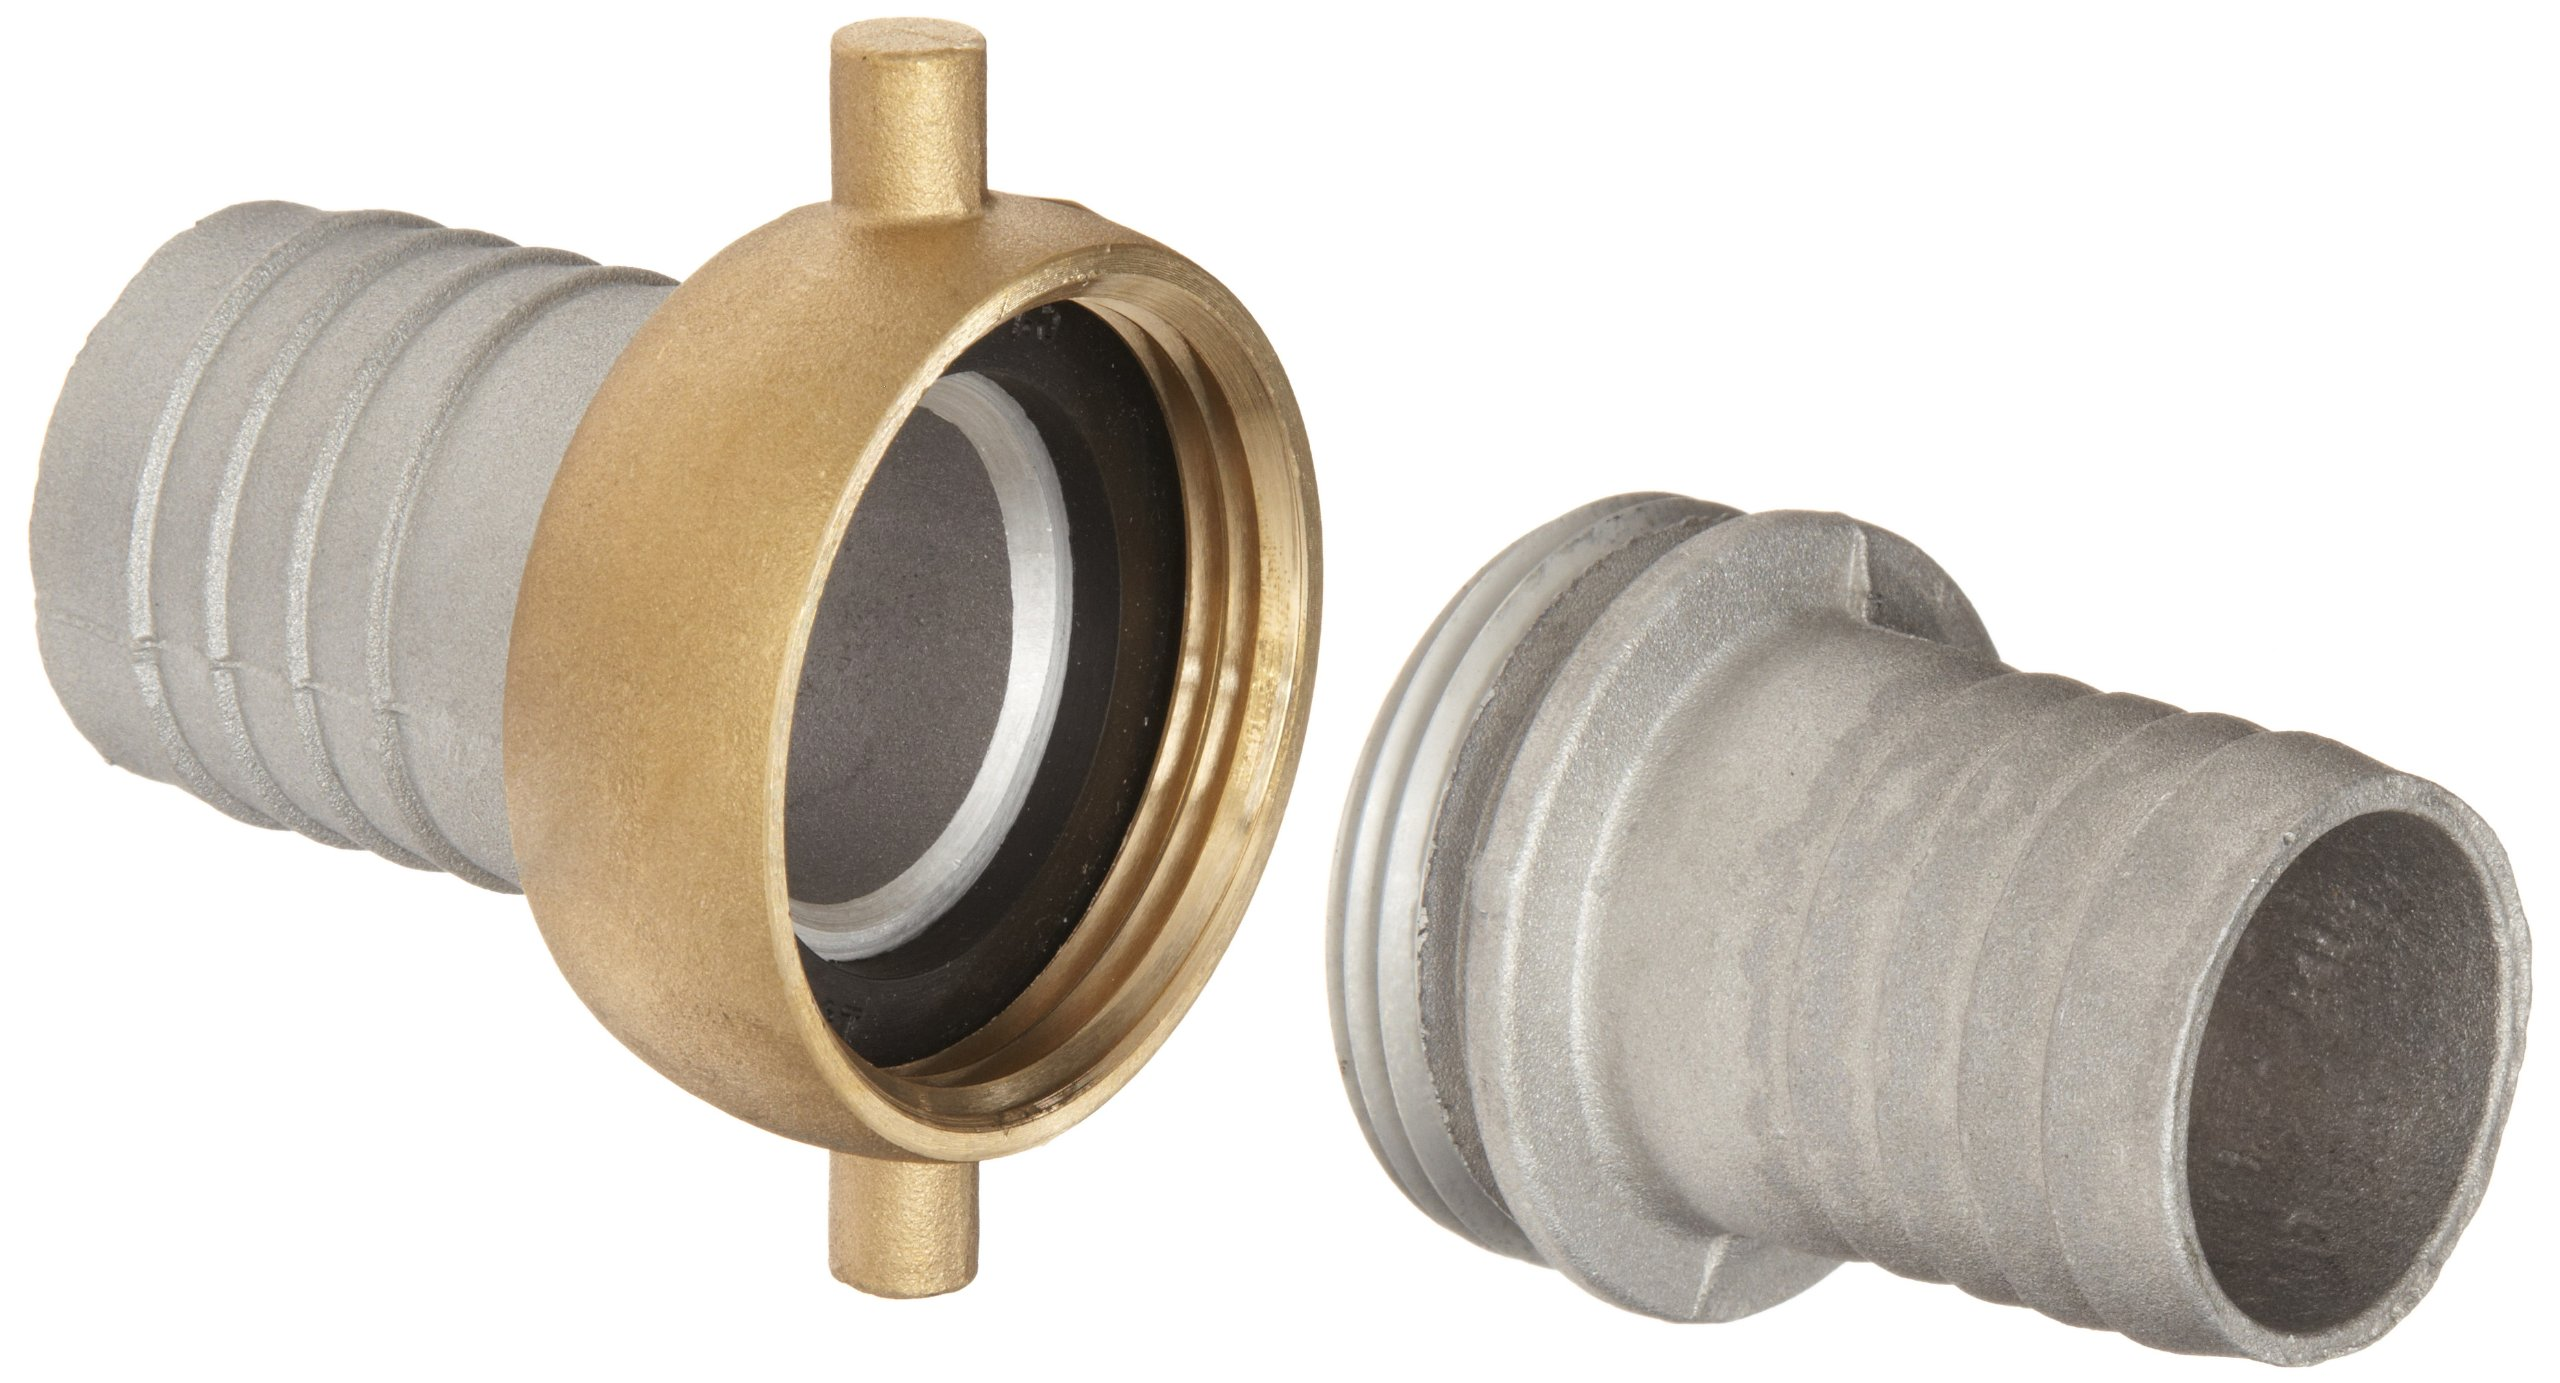 Dixon CAB150 Aluminum Hose Fitting, Complete King Short Suction Coupling Set with Brass Nut, 1-1/2'' NPSM x 1-1/2'' Hose ID Barbed